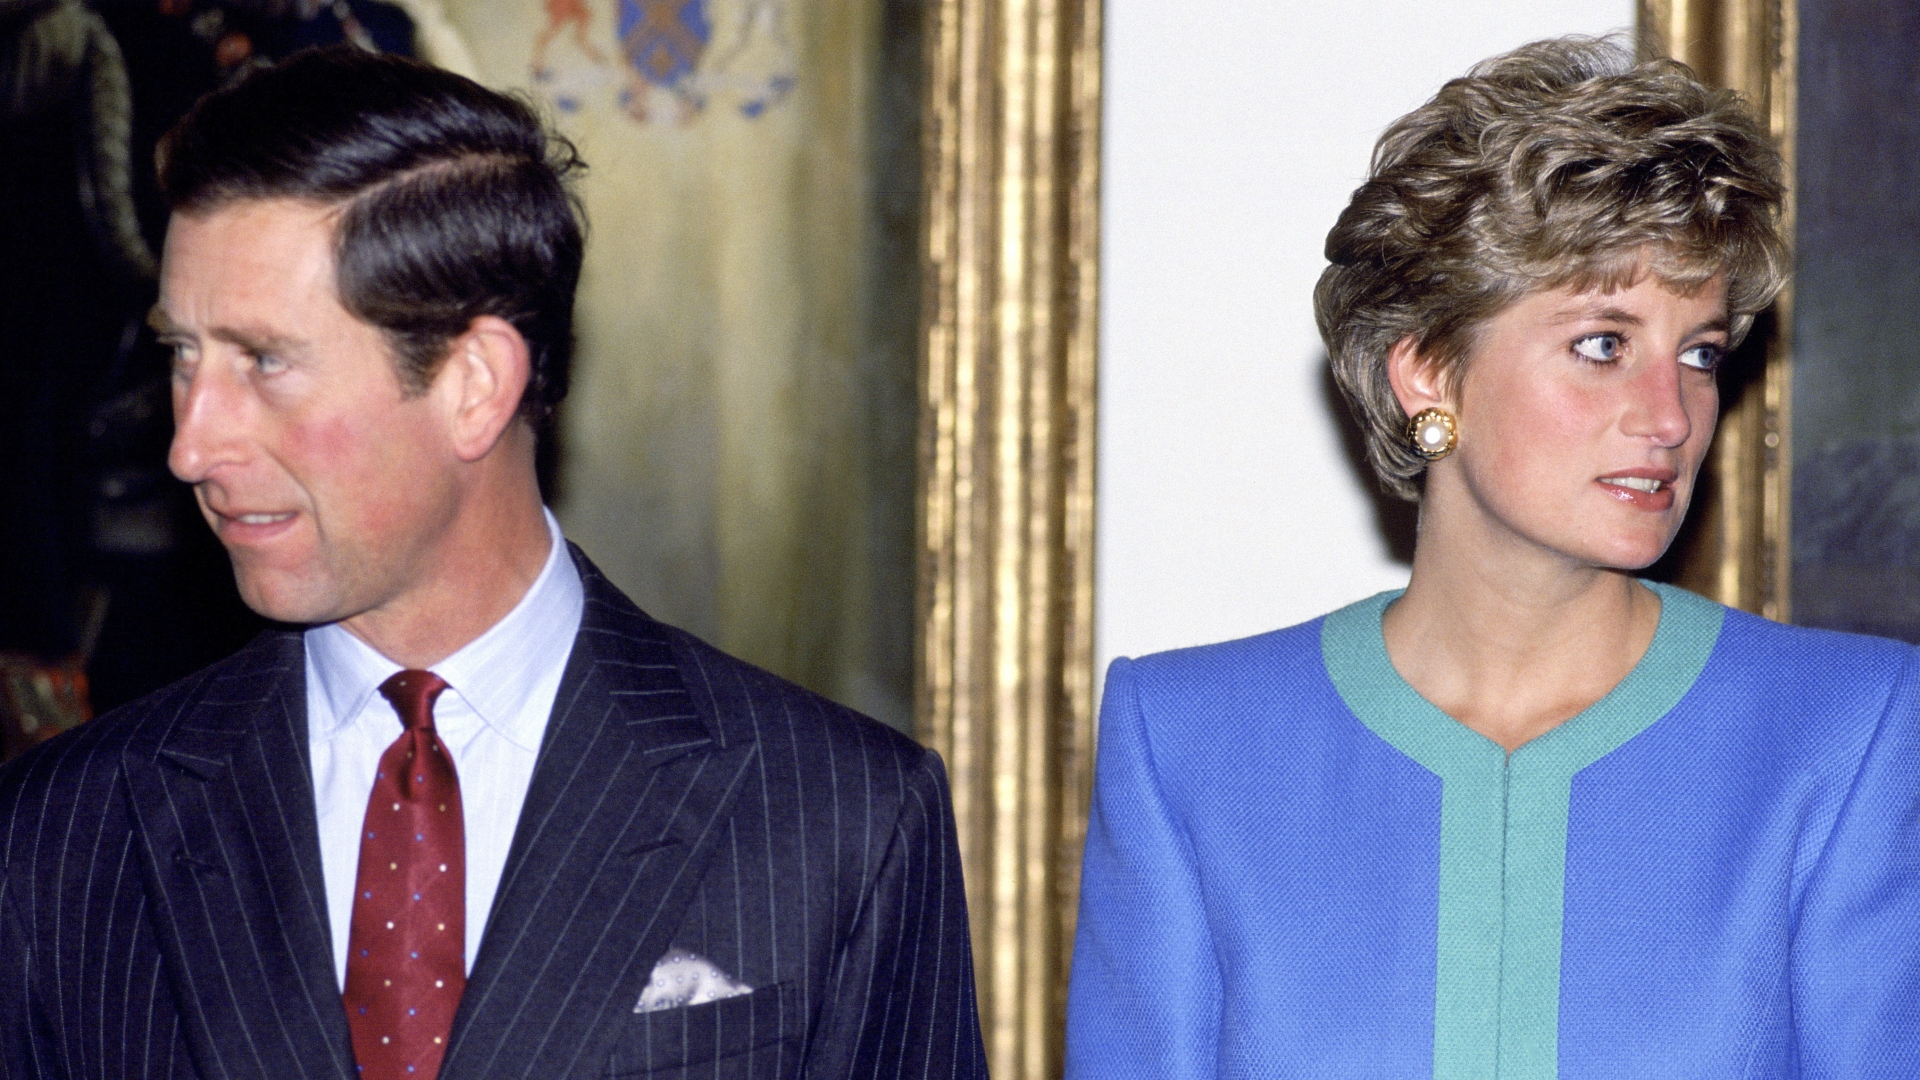 The Prince and Princess of Wales during a visit to Canada. (Credit: Tim Graham/Getty Images)